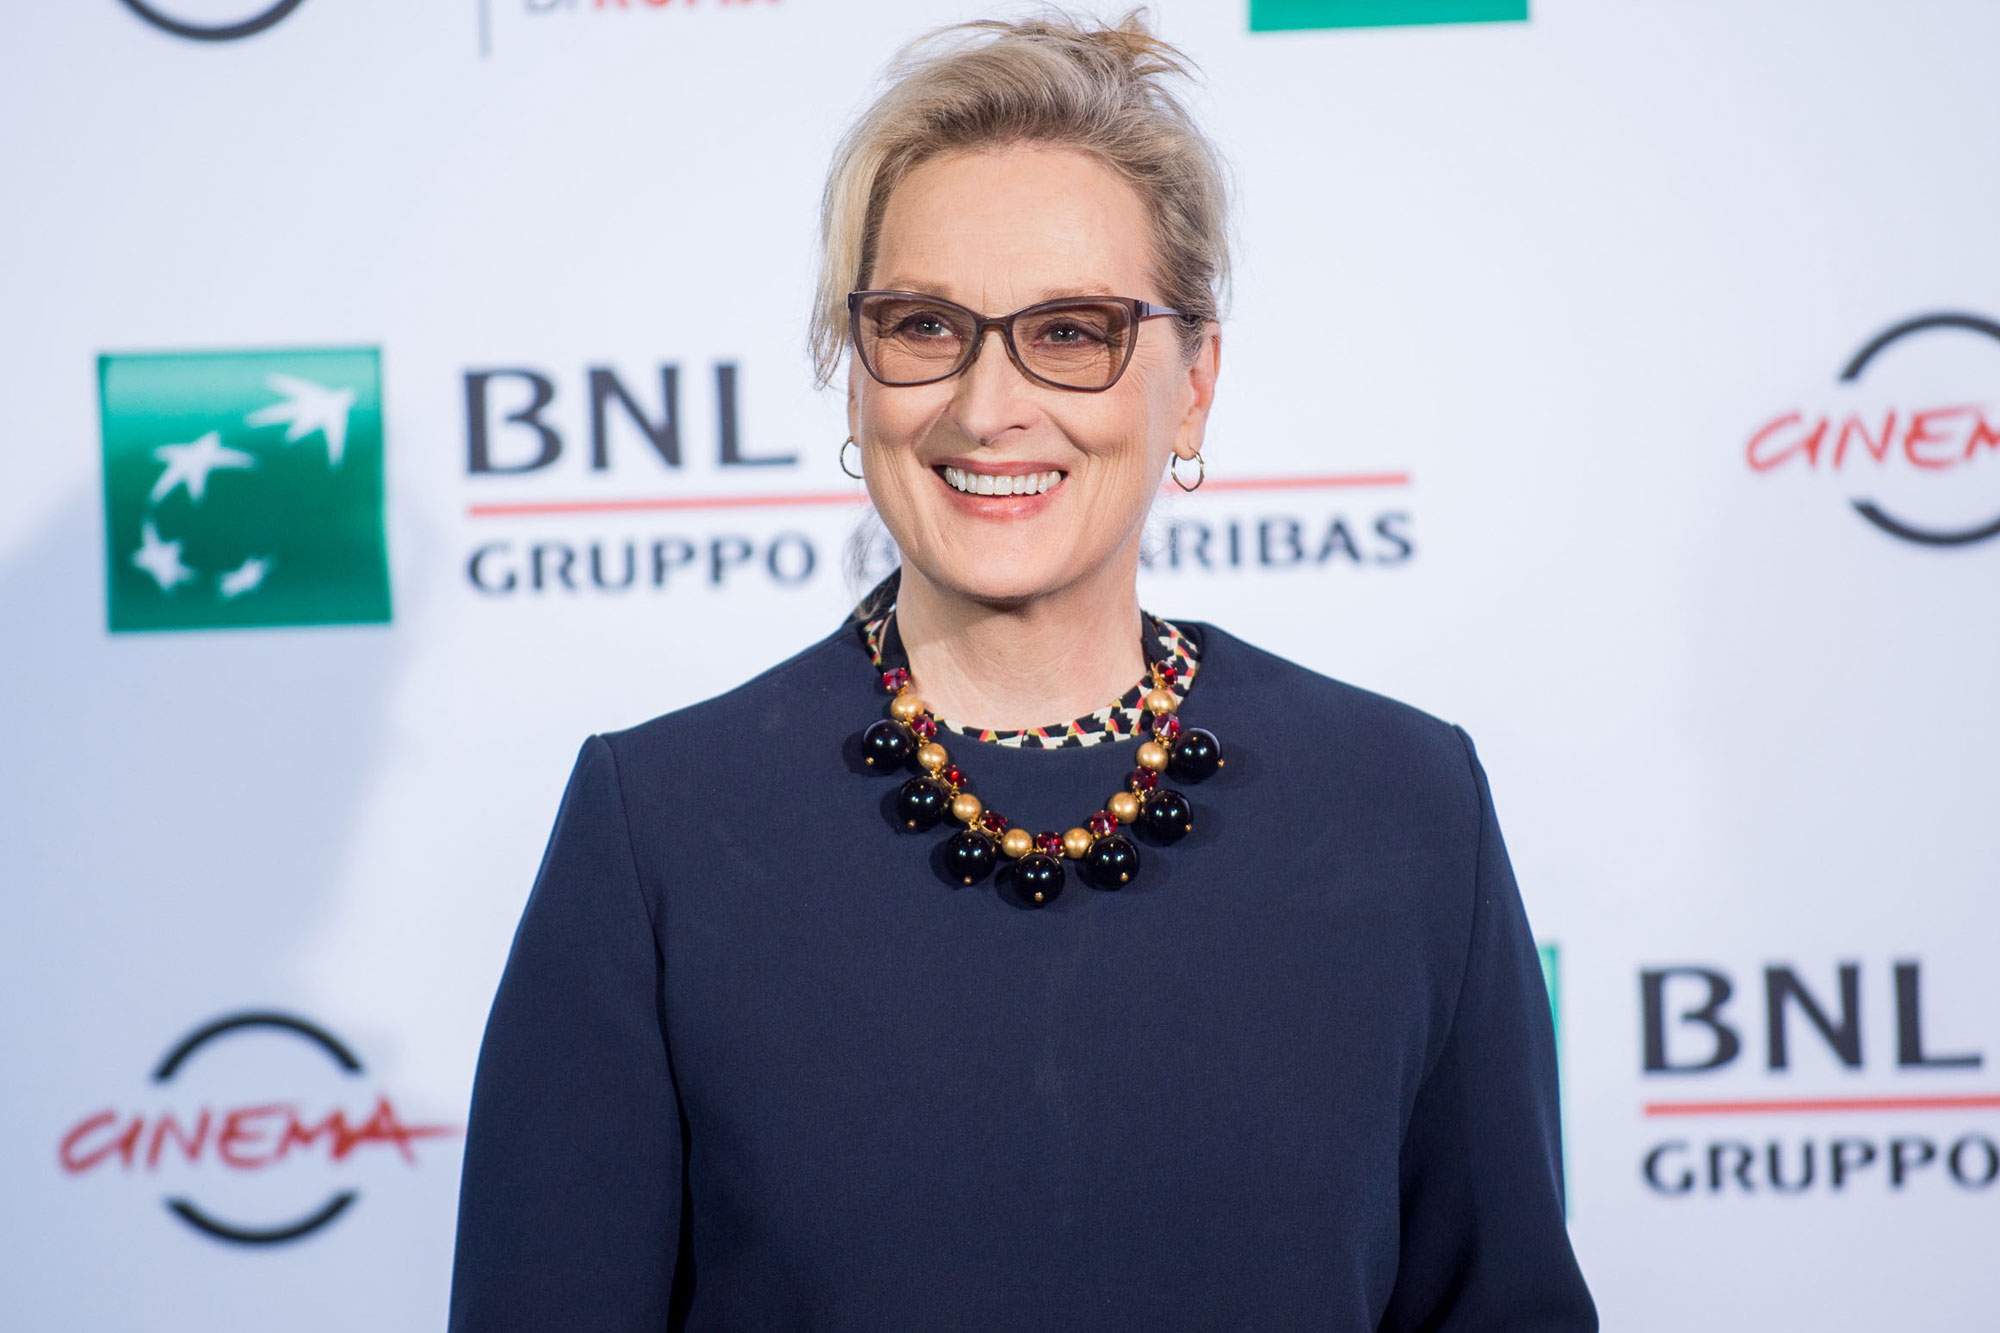 11th Rome Film Festival - 'Florence Foster Jenkins' - Photocall